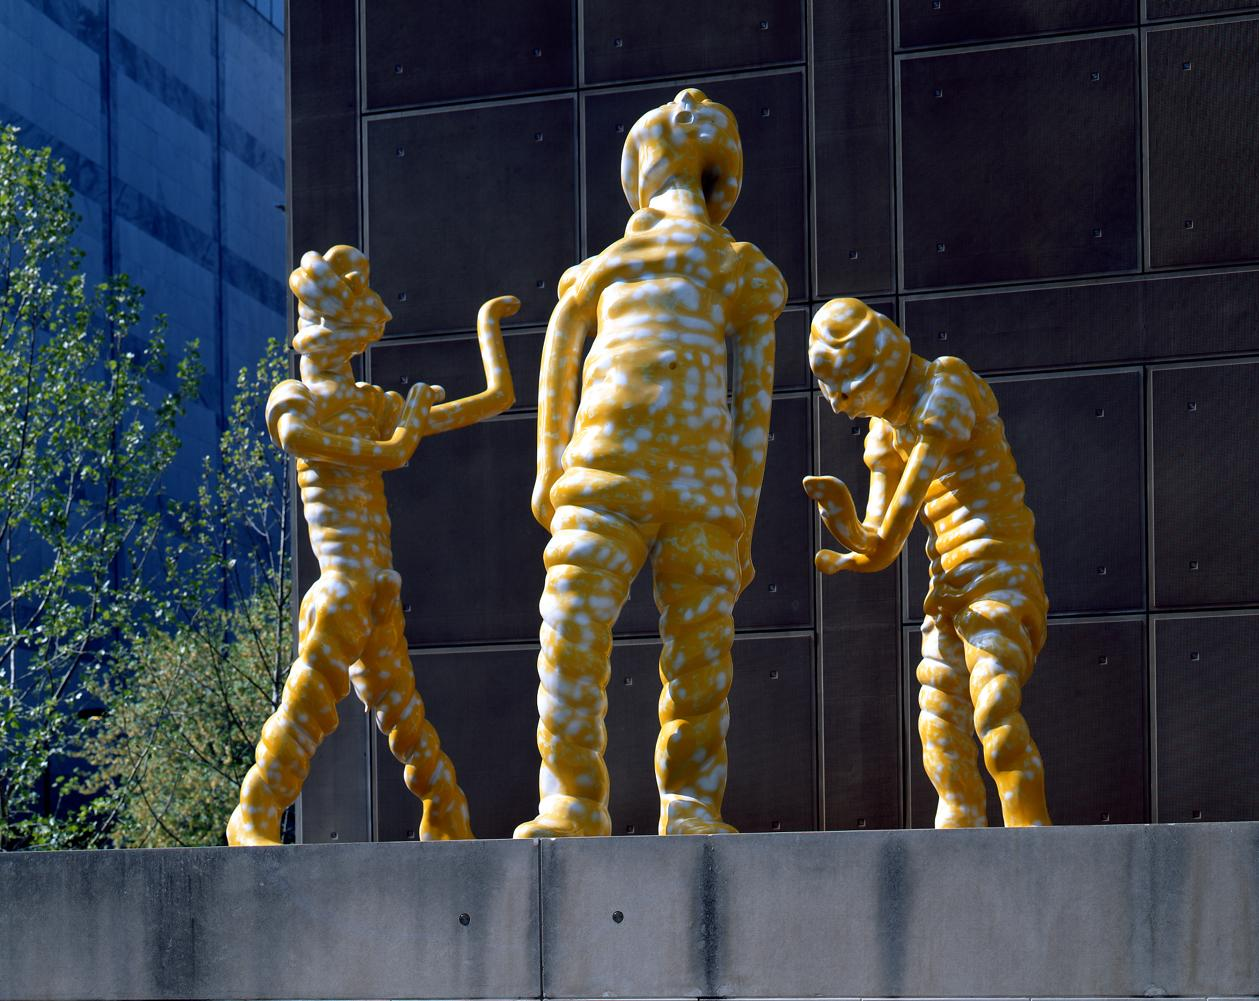 Three larger-than-life yellow figures face each other in an outdoor installation